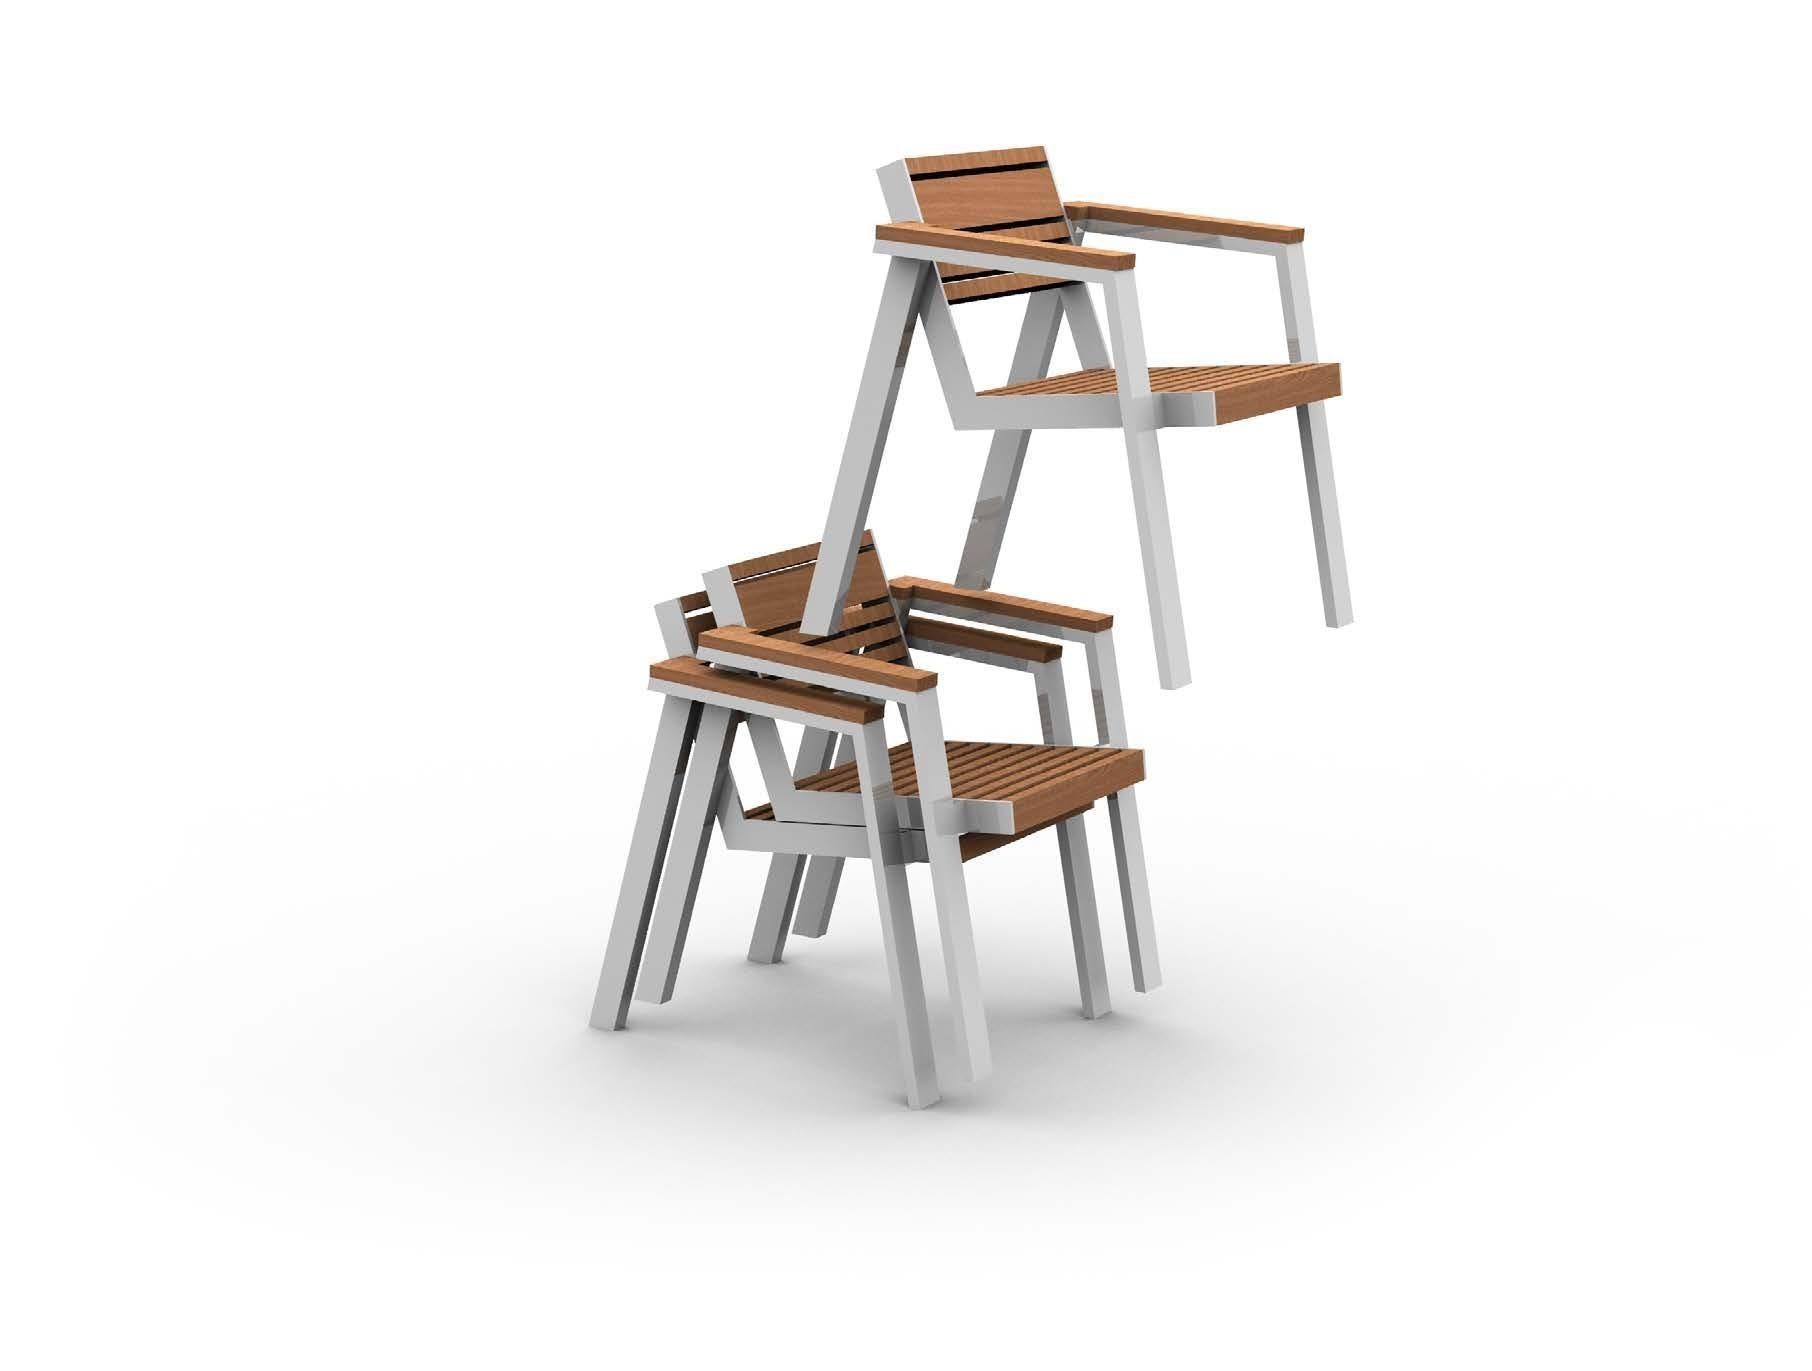 <p>Outdoor Furniture – Metal & Wooden Dining Collection – Carina Stackable Chairs.</p> <p> </p> <p>Carina Furniture – Stackable Armchairs.</p> <p> </p> <p>A versatile range offering cleanly styled modern looking furniture for any discerning restaurateur or hospitality event organiser</p>